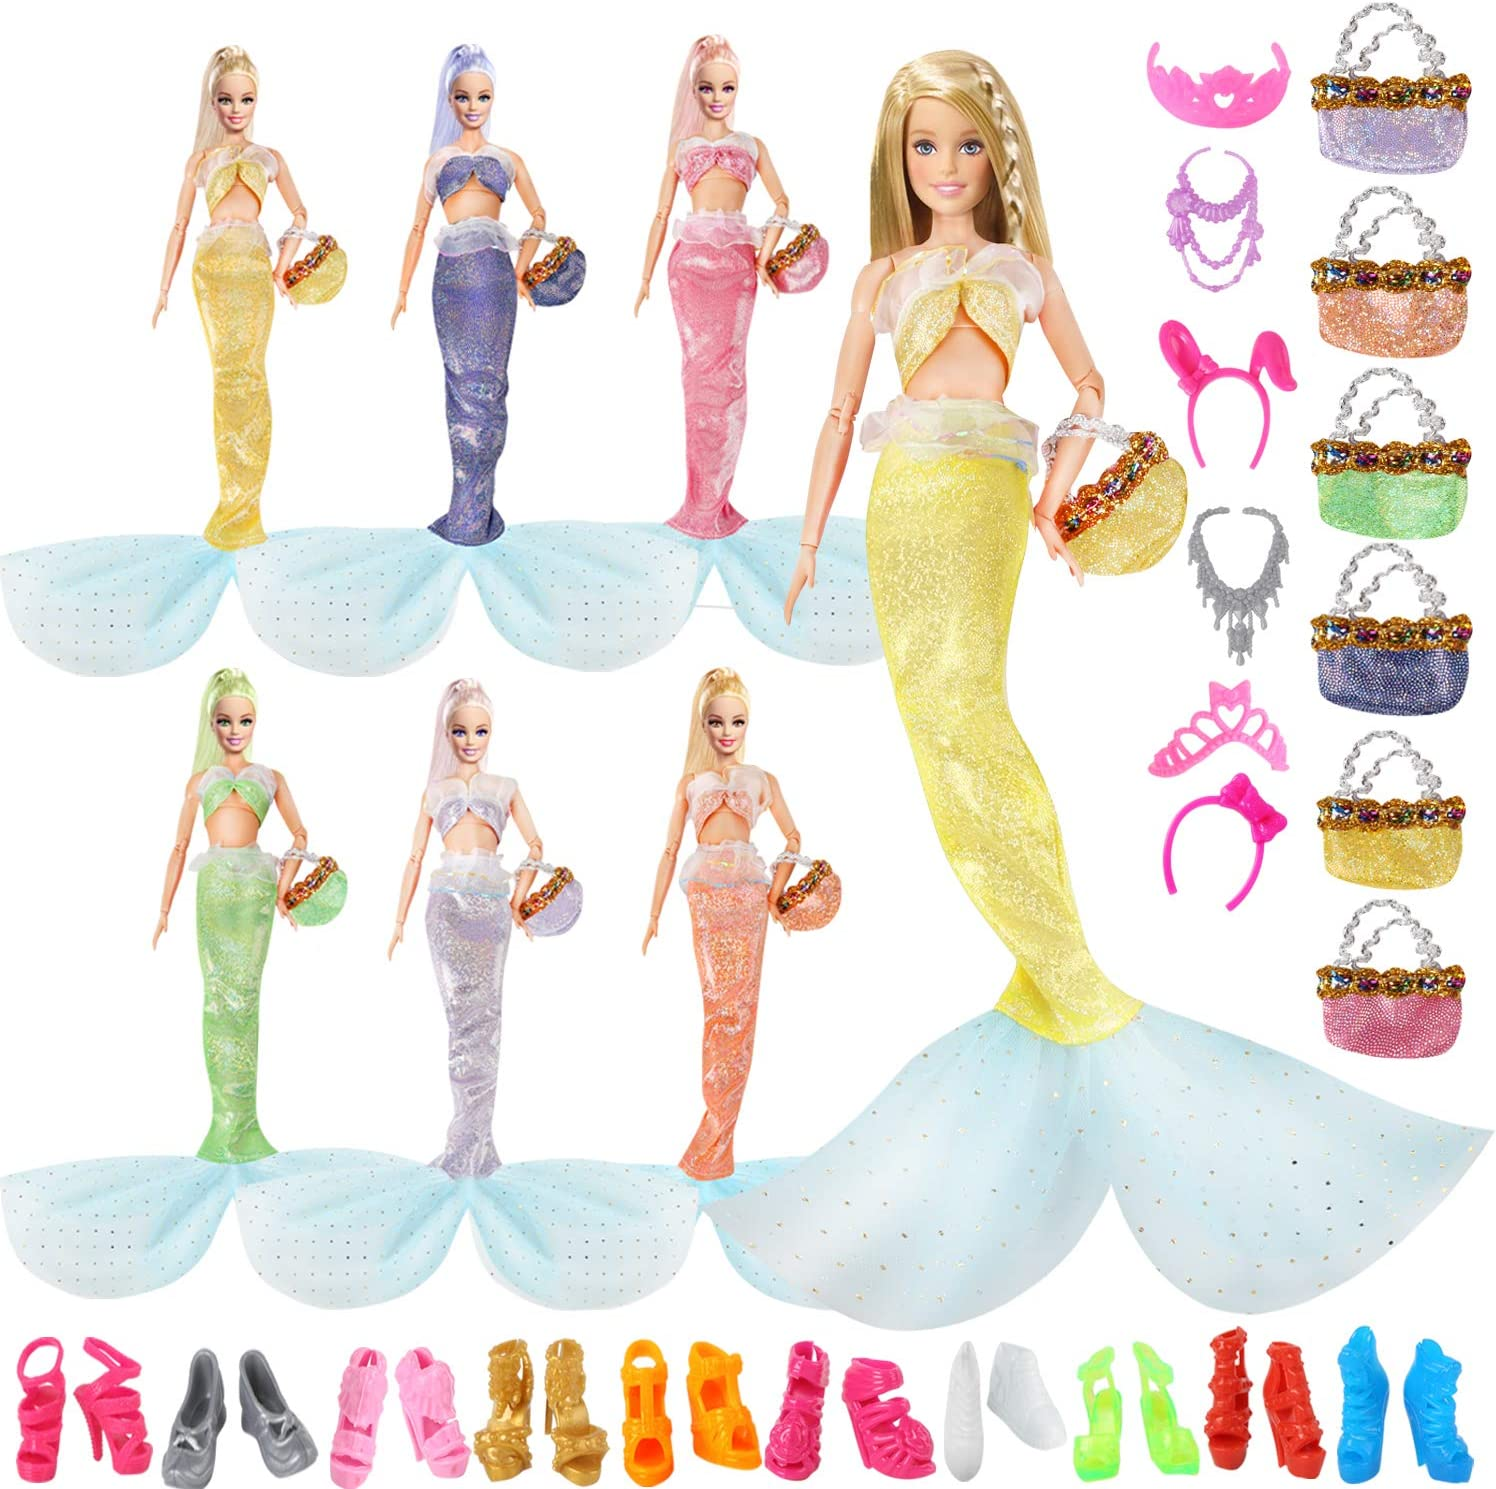 OUFOTAT Mermaid Doll Clothes and 11.5 famous Barbi Accessories Inch Branded goods for